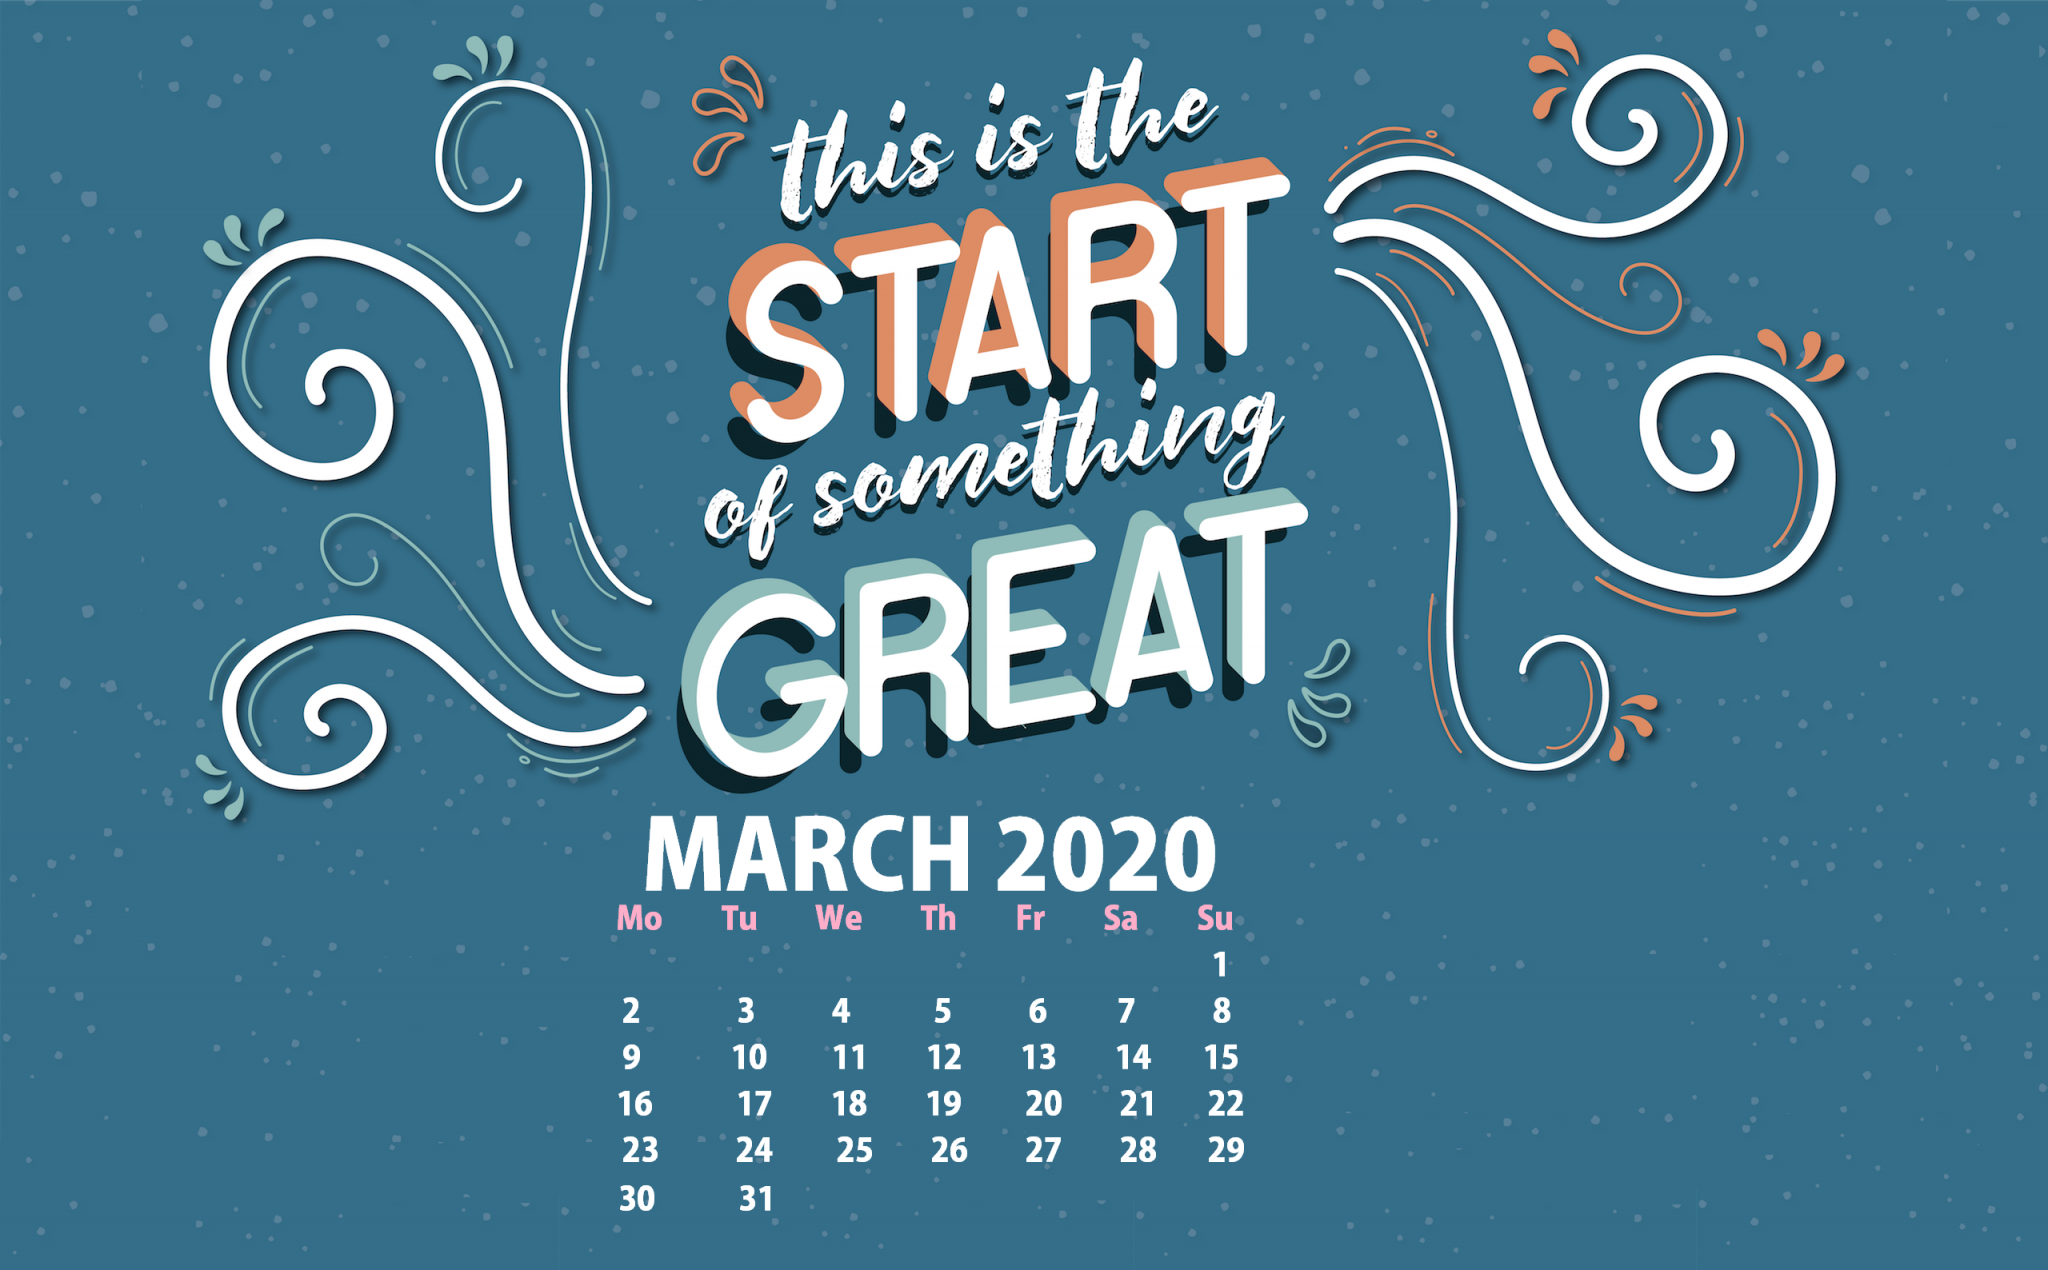 March 2020 Desktop Calendar Wallpaper In 2020 Desktop Wallpaper